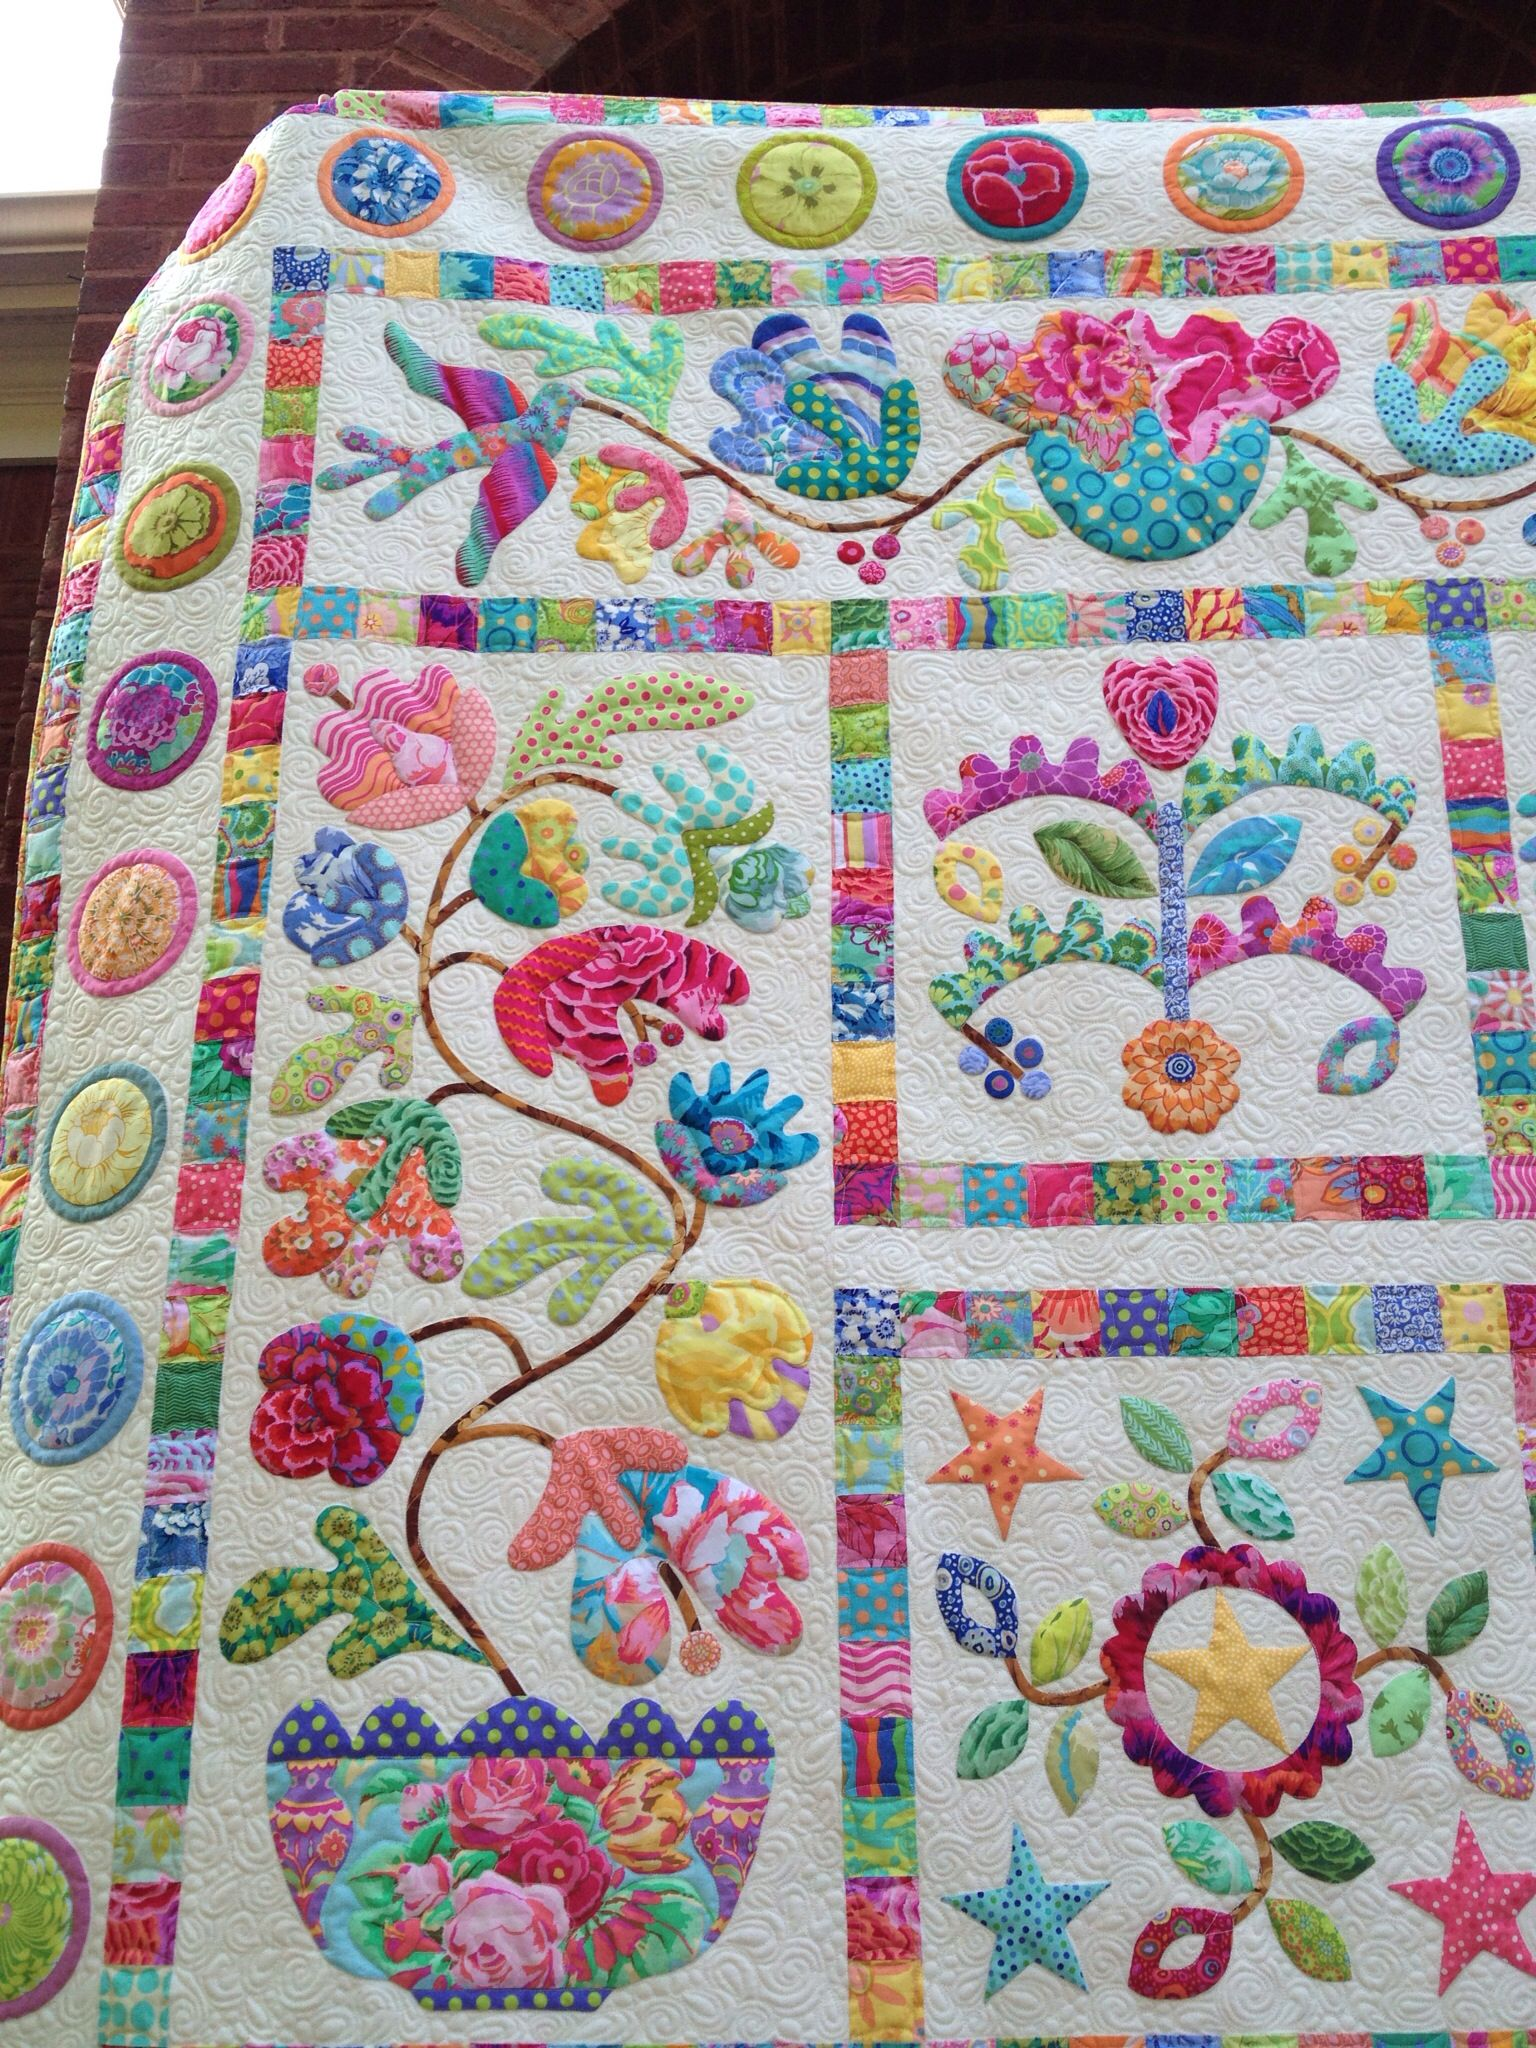 Well here it is my finished Flower Pots quilt by Kim McLean. This ... : flower patchwork quilt - Adamdwight.com